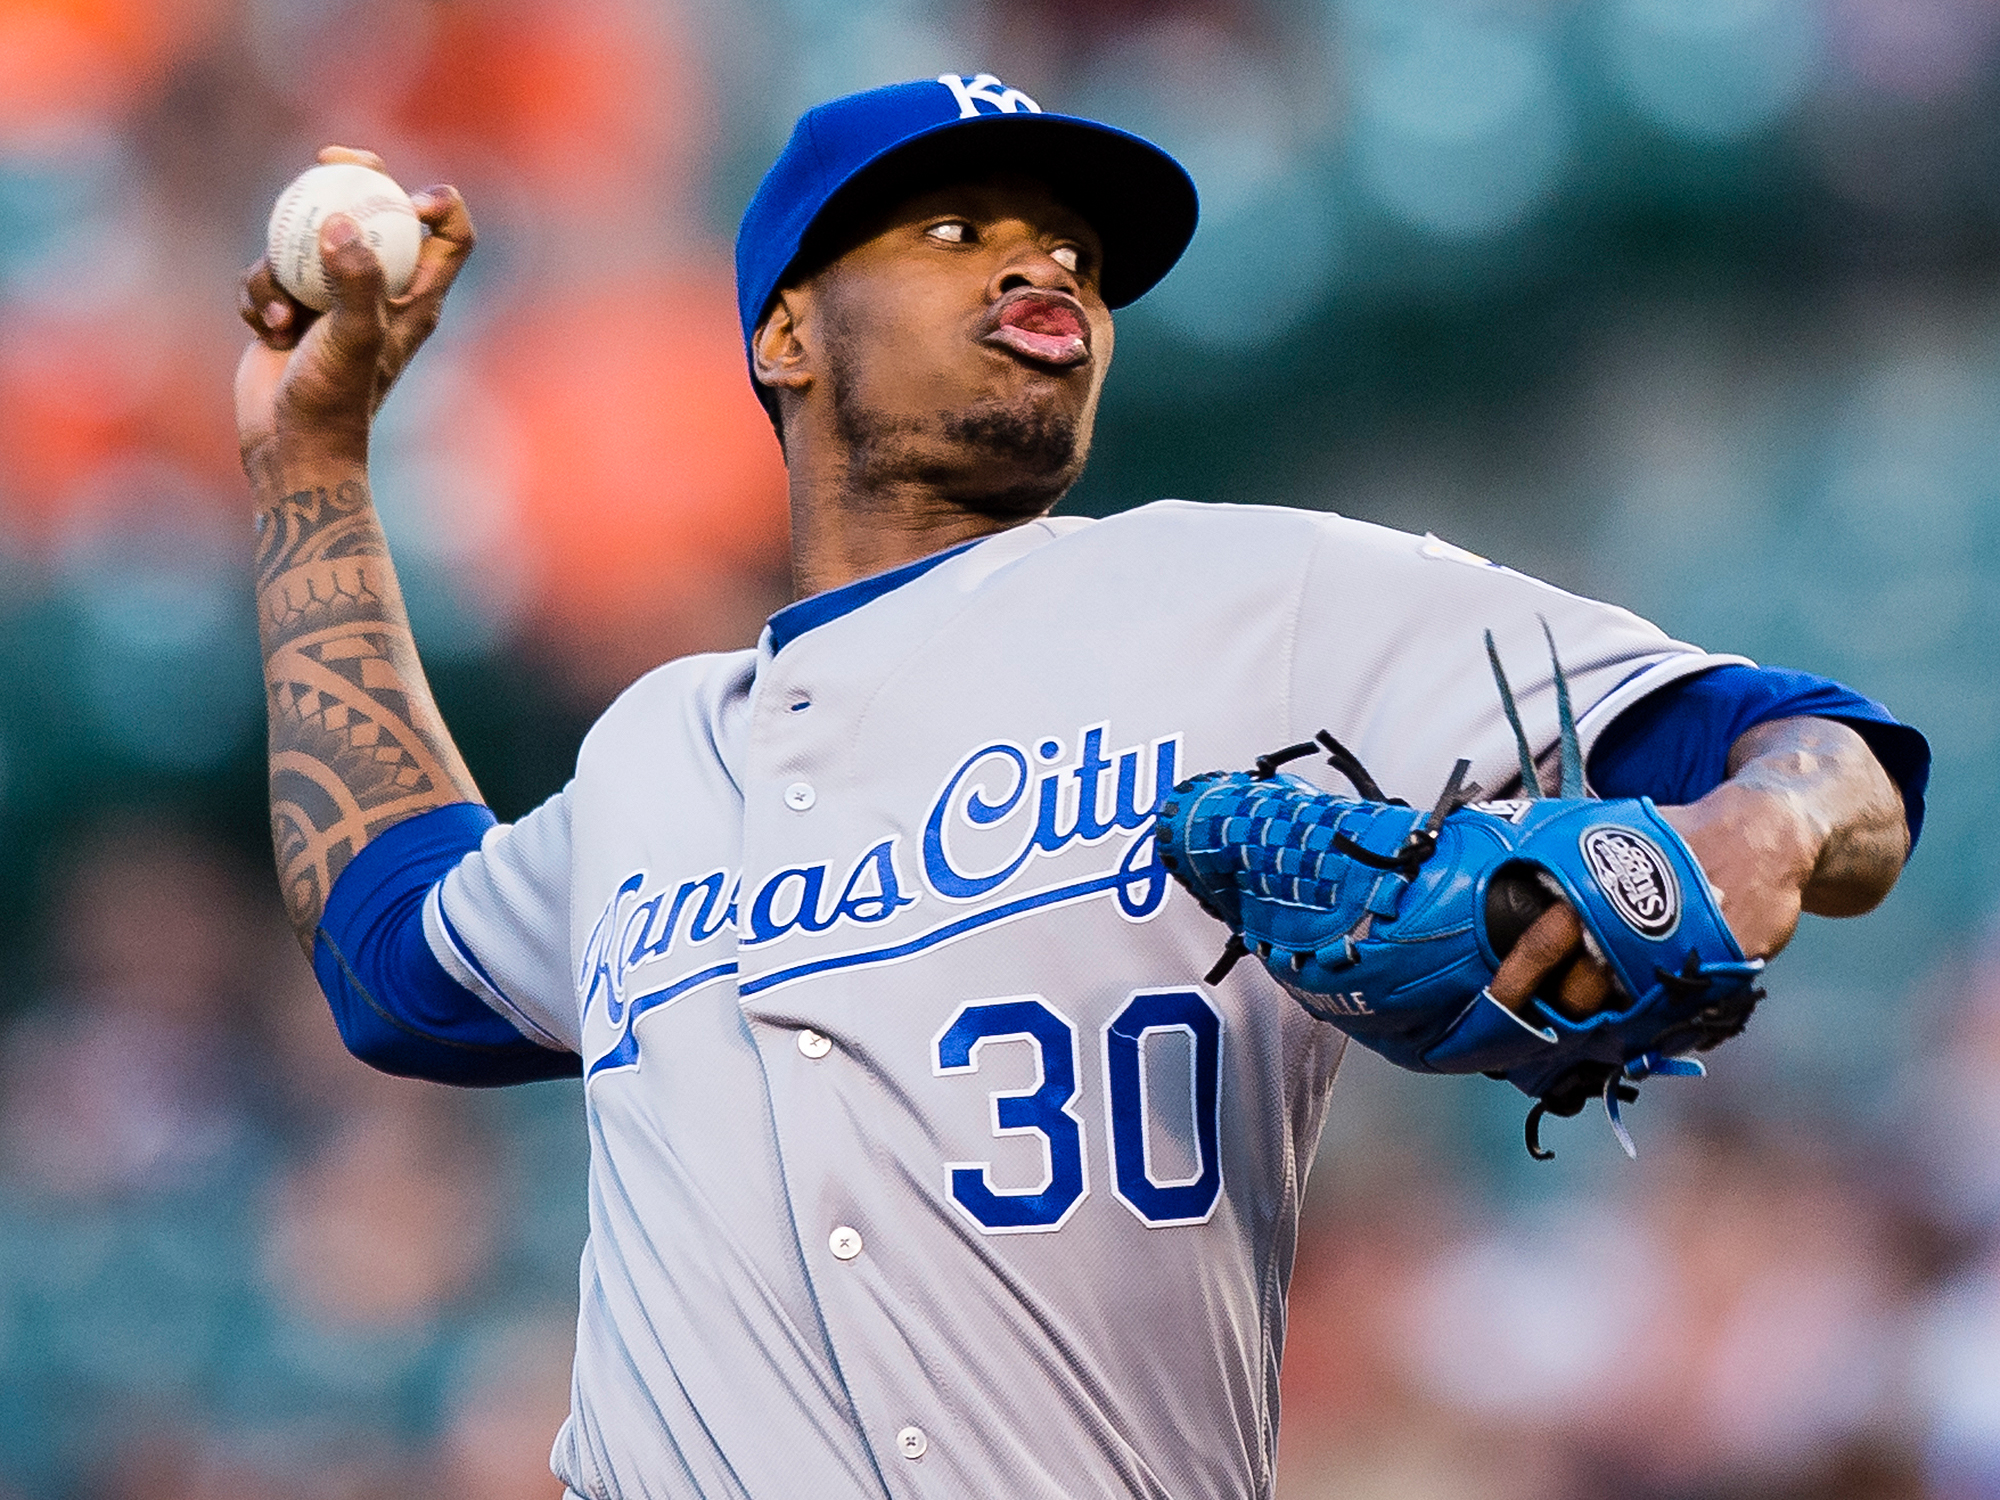 Royals Pitcher Yordano Ventura Dies in Car Accident in Dominican Republic